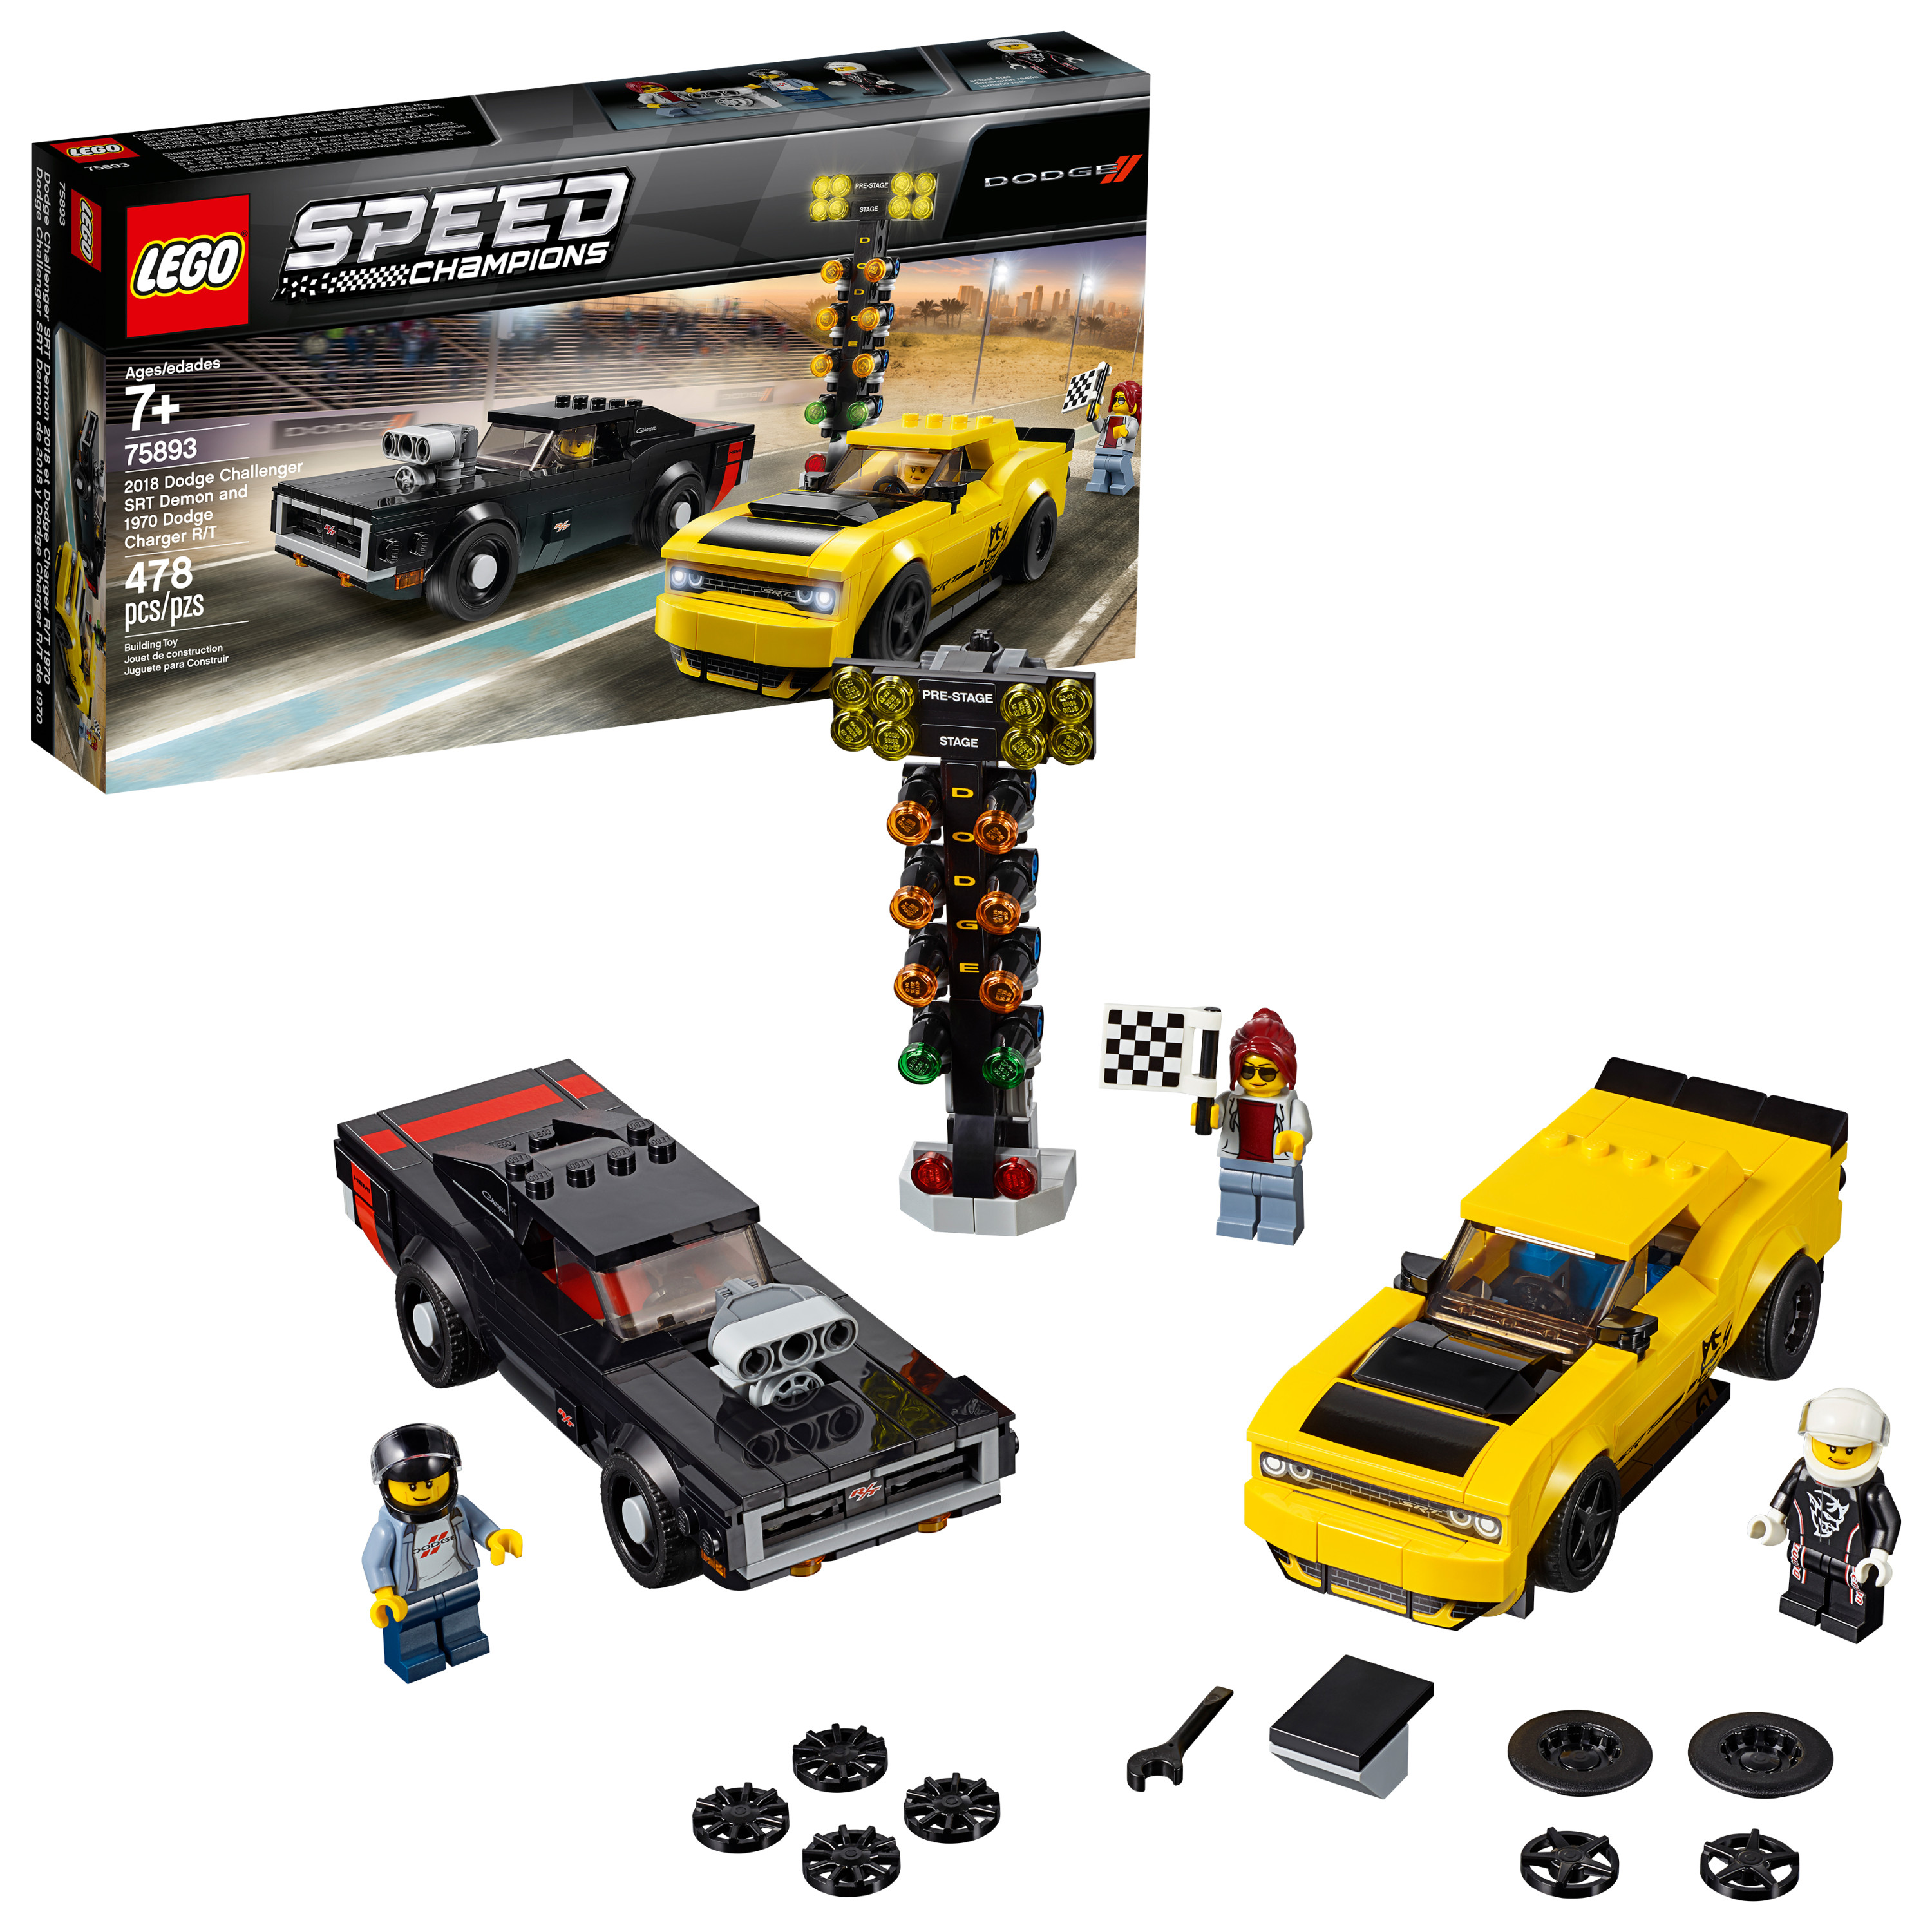 LEGO Speed Champions 2018 Dodge Challenger SRT Demon and 1970 75893 Building Car